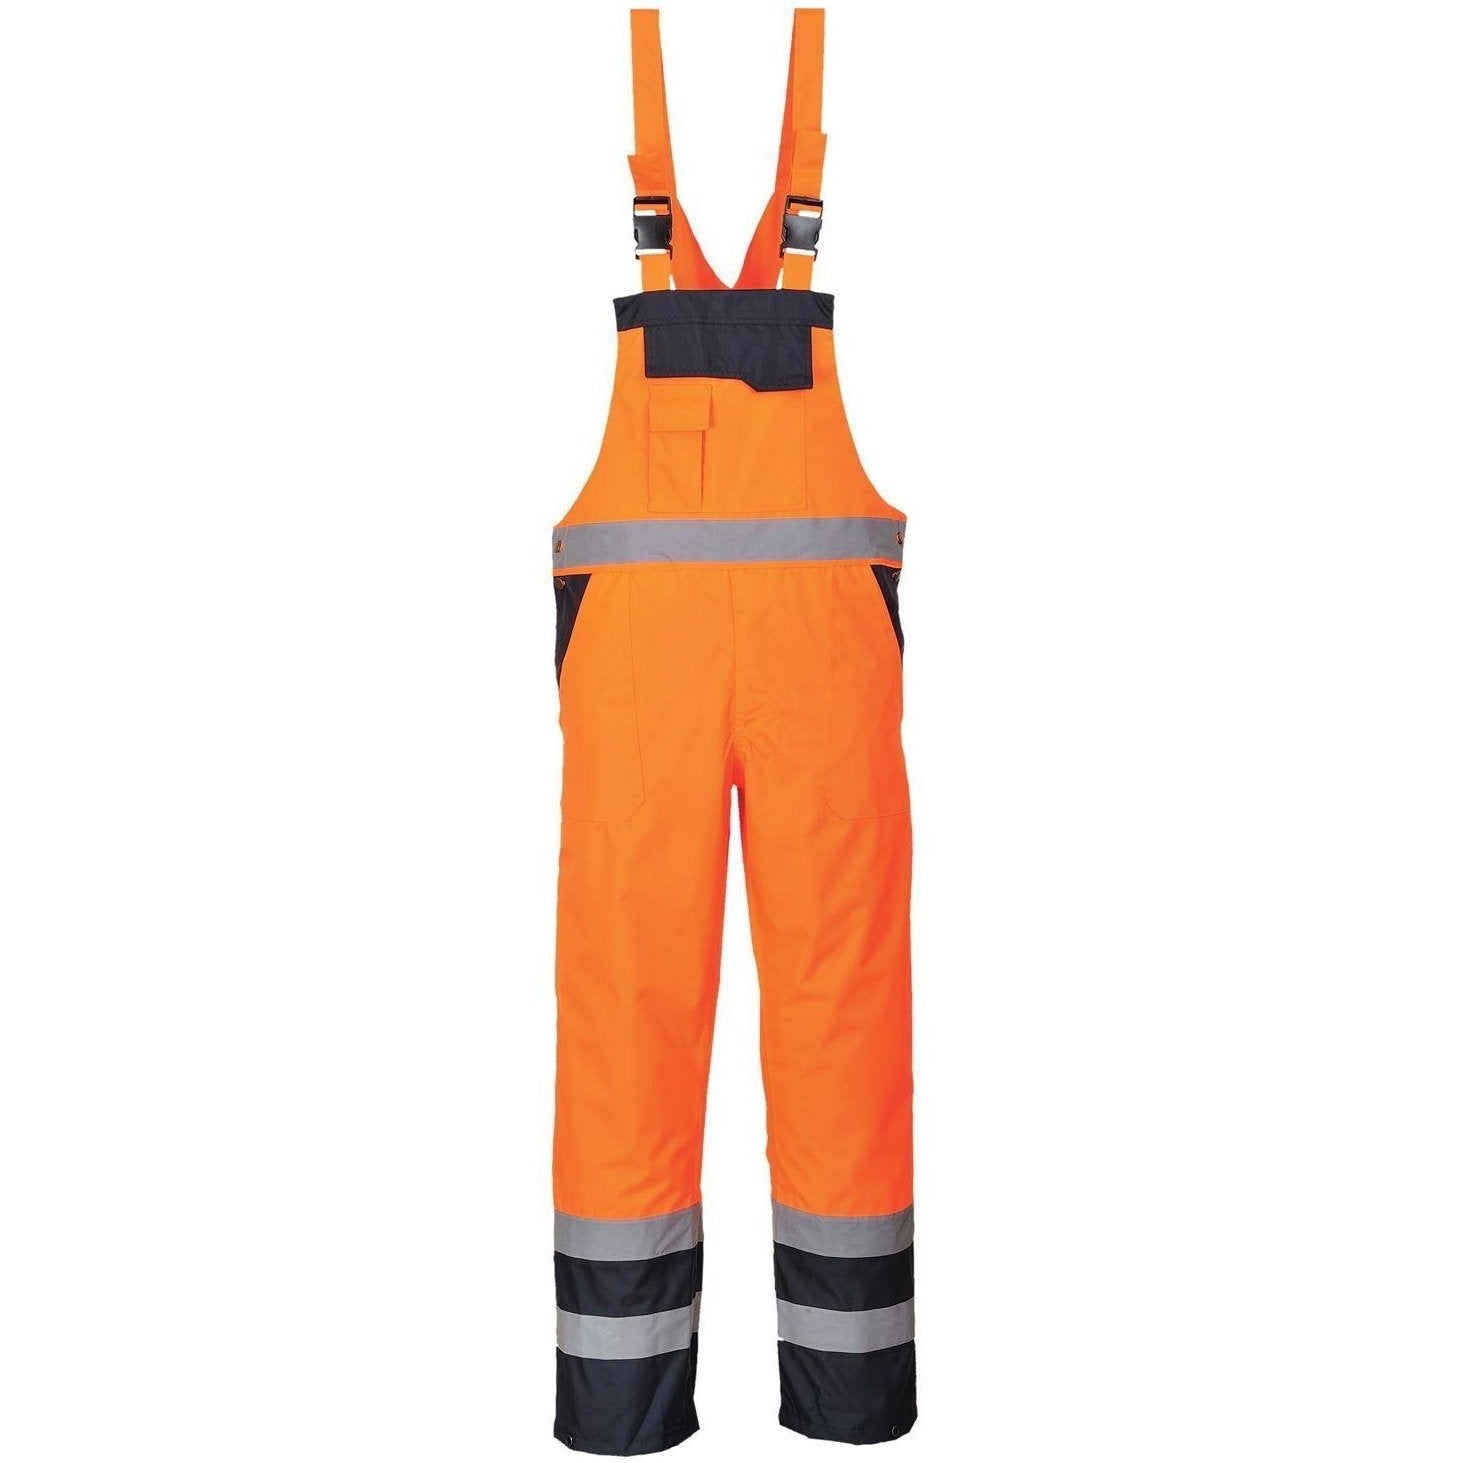 Portwest Contrast Bib & Brace - Unlined S488 - reid outdoors